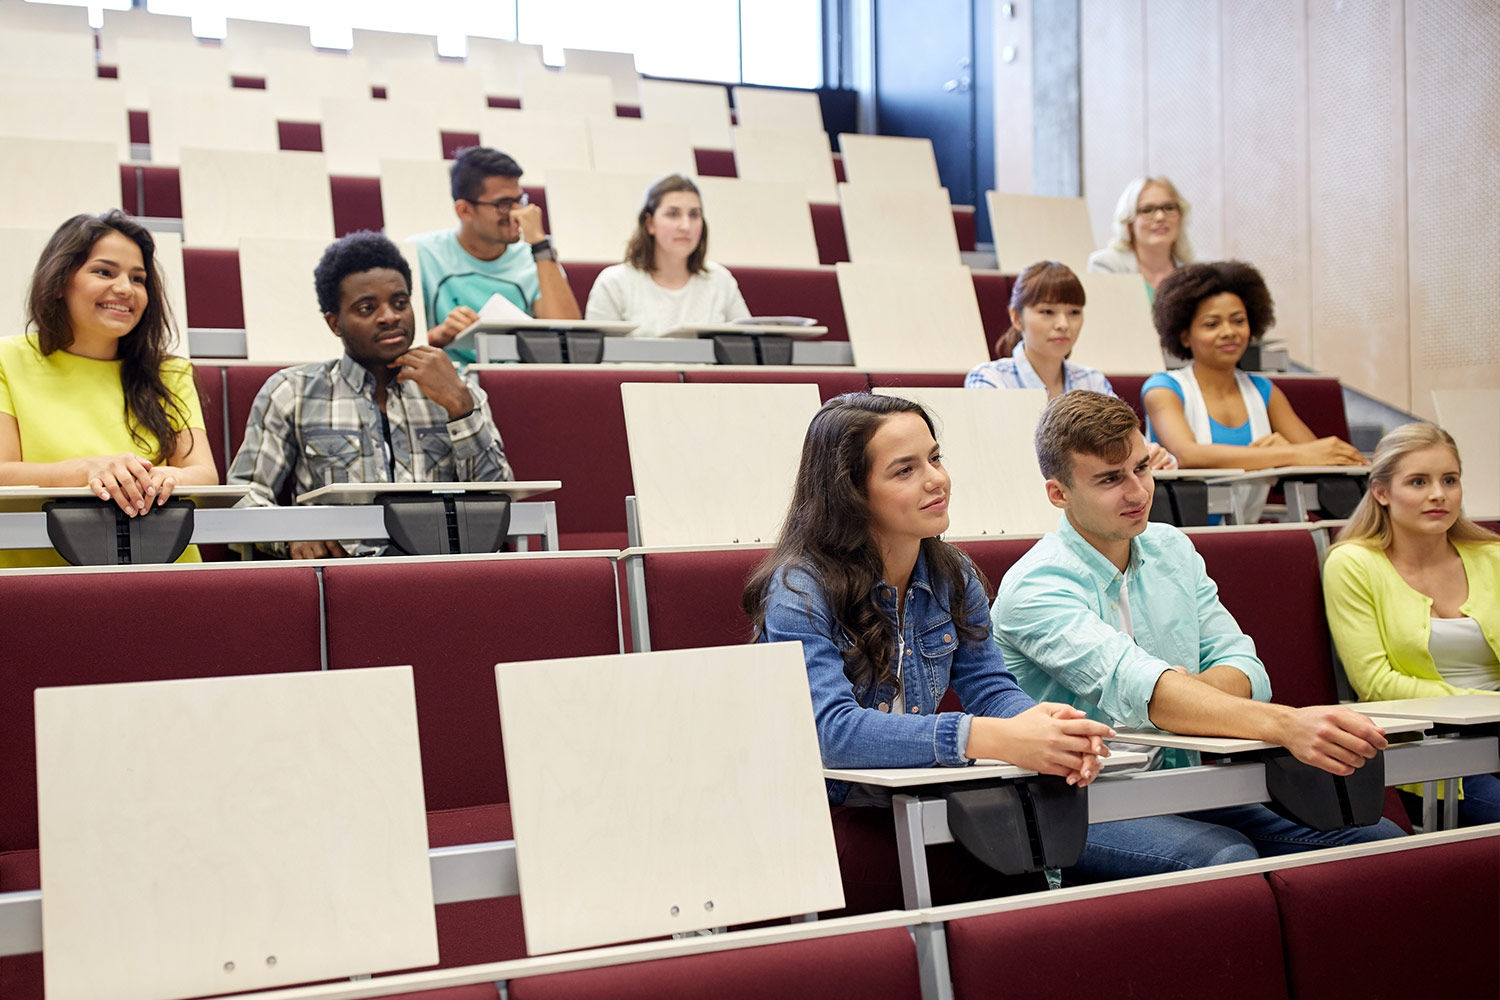 social distancing in lecture theatre